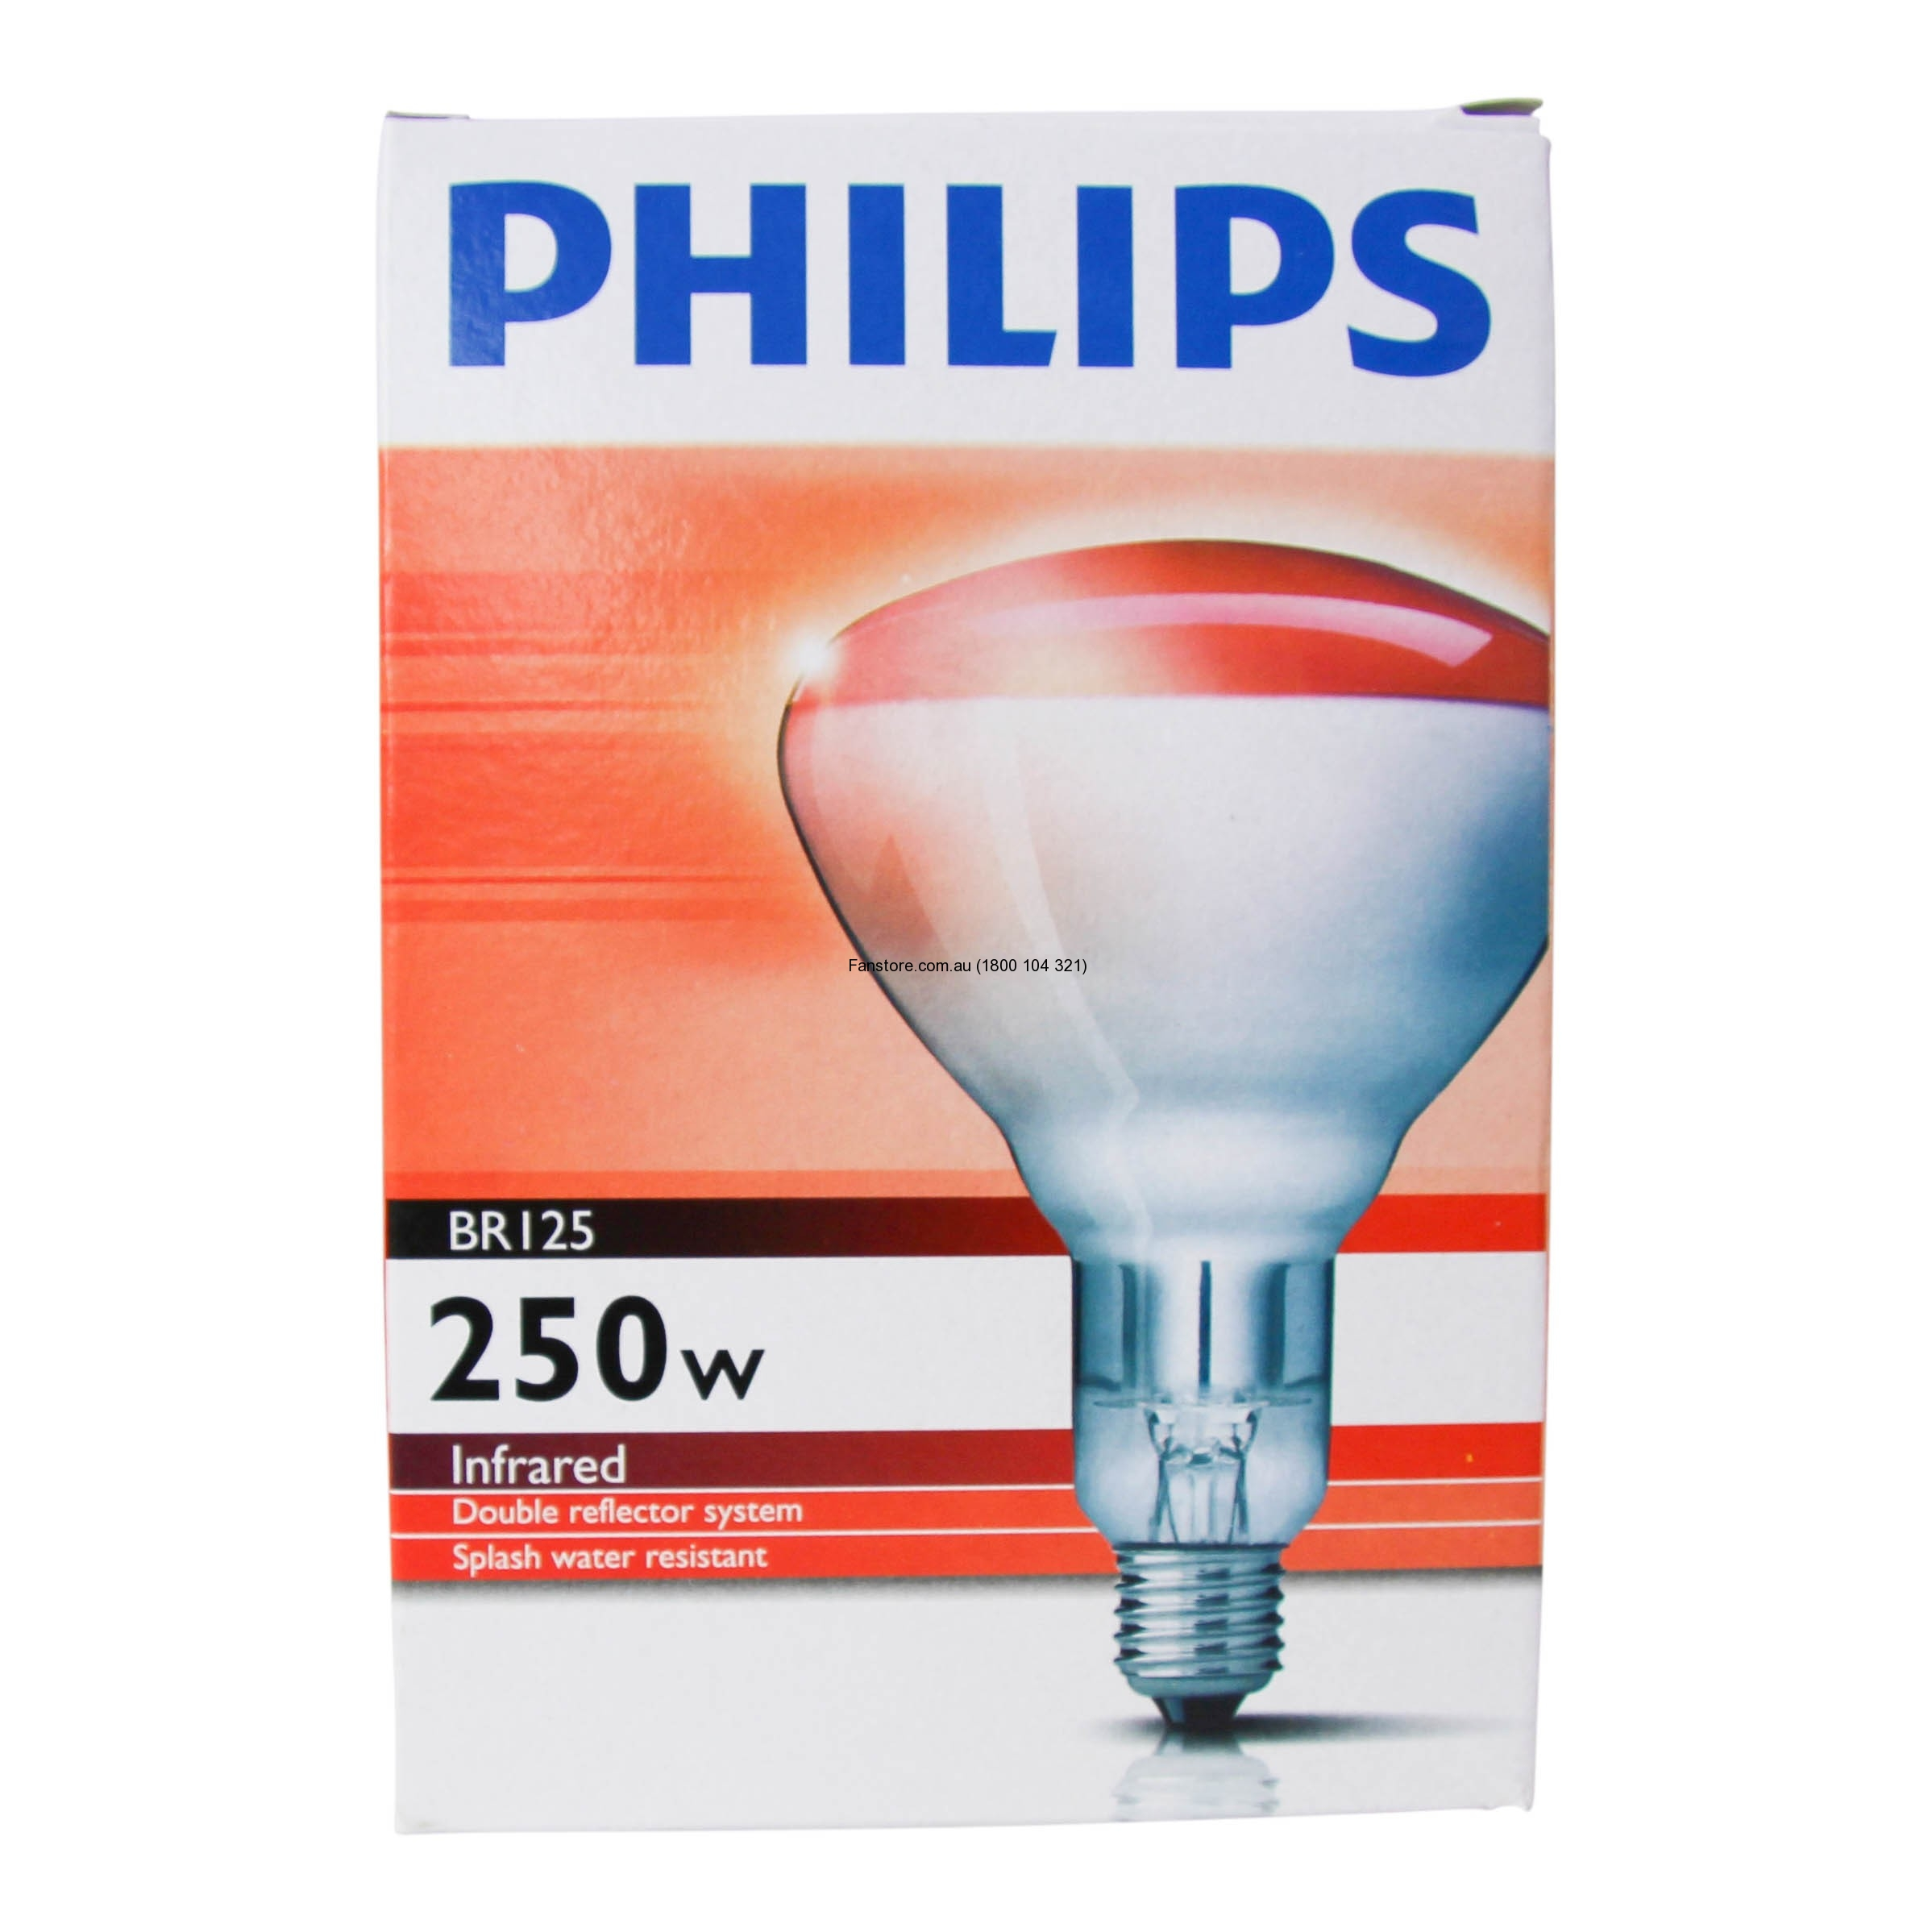 Philips Br125 Ir 250w E27 230 250v Red